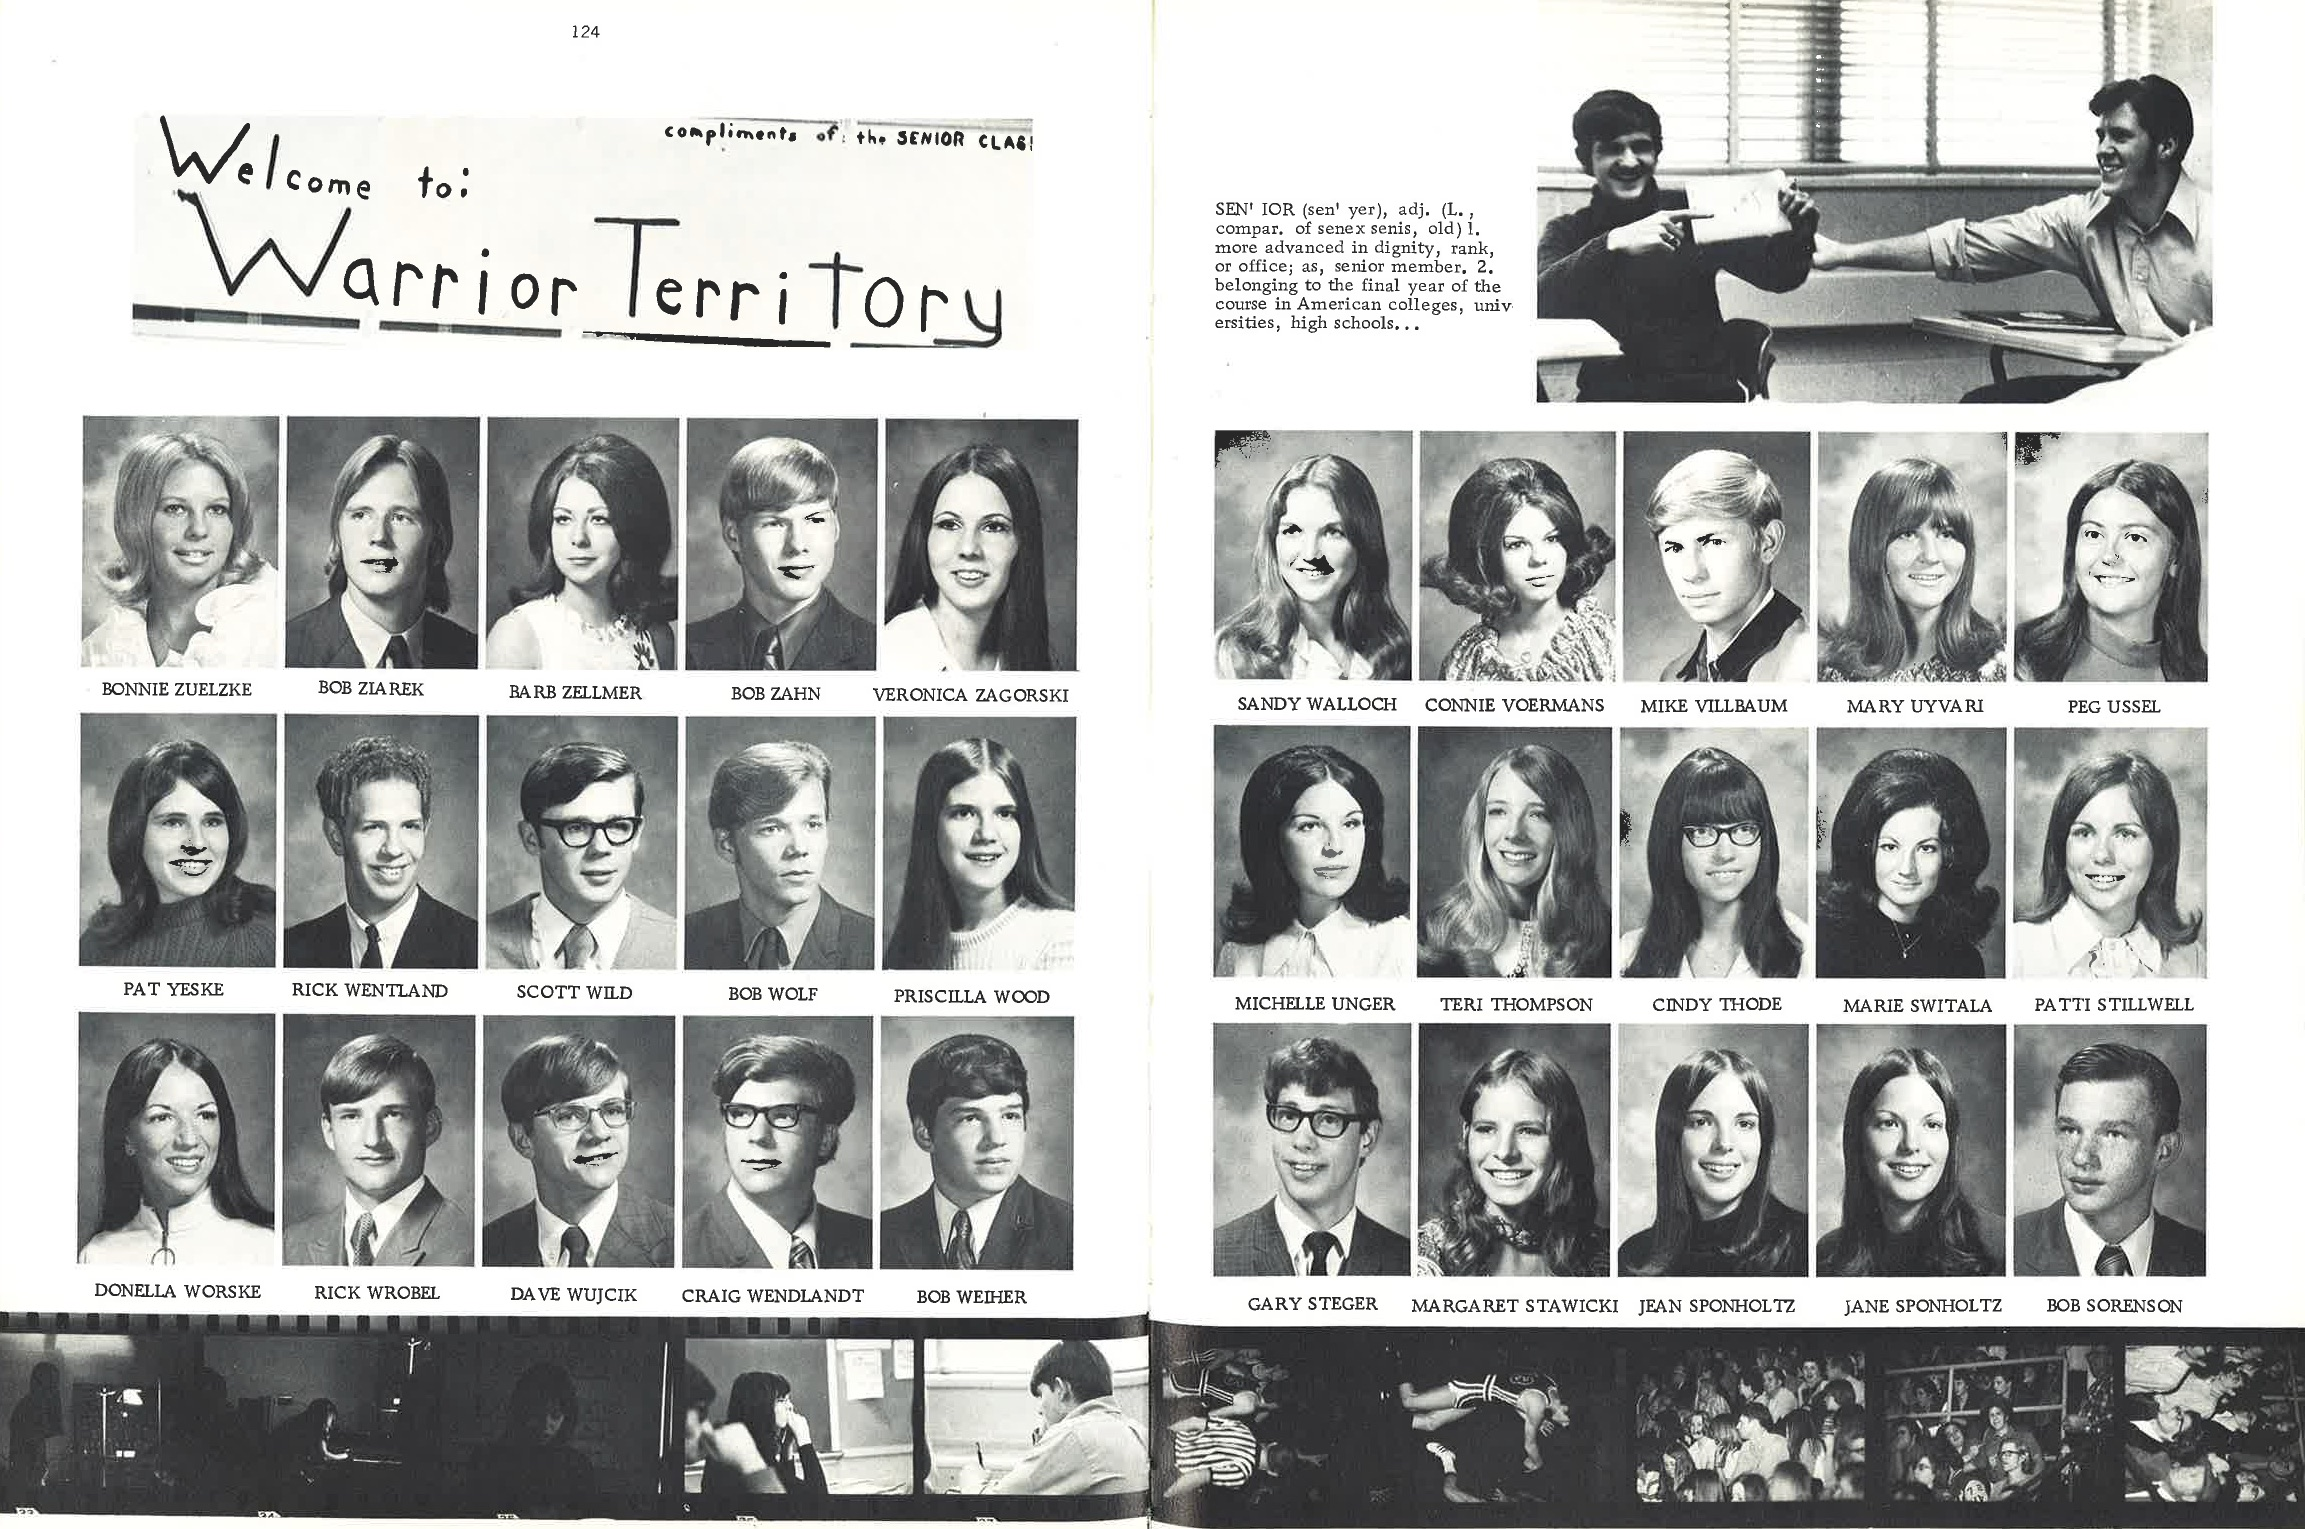 1972_Yearbook_124-125.jpg